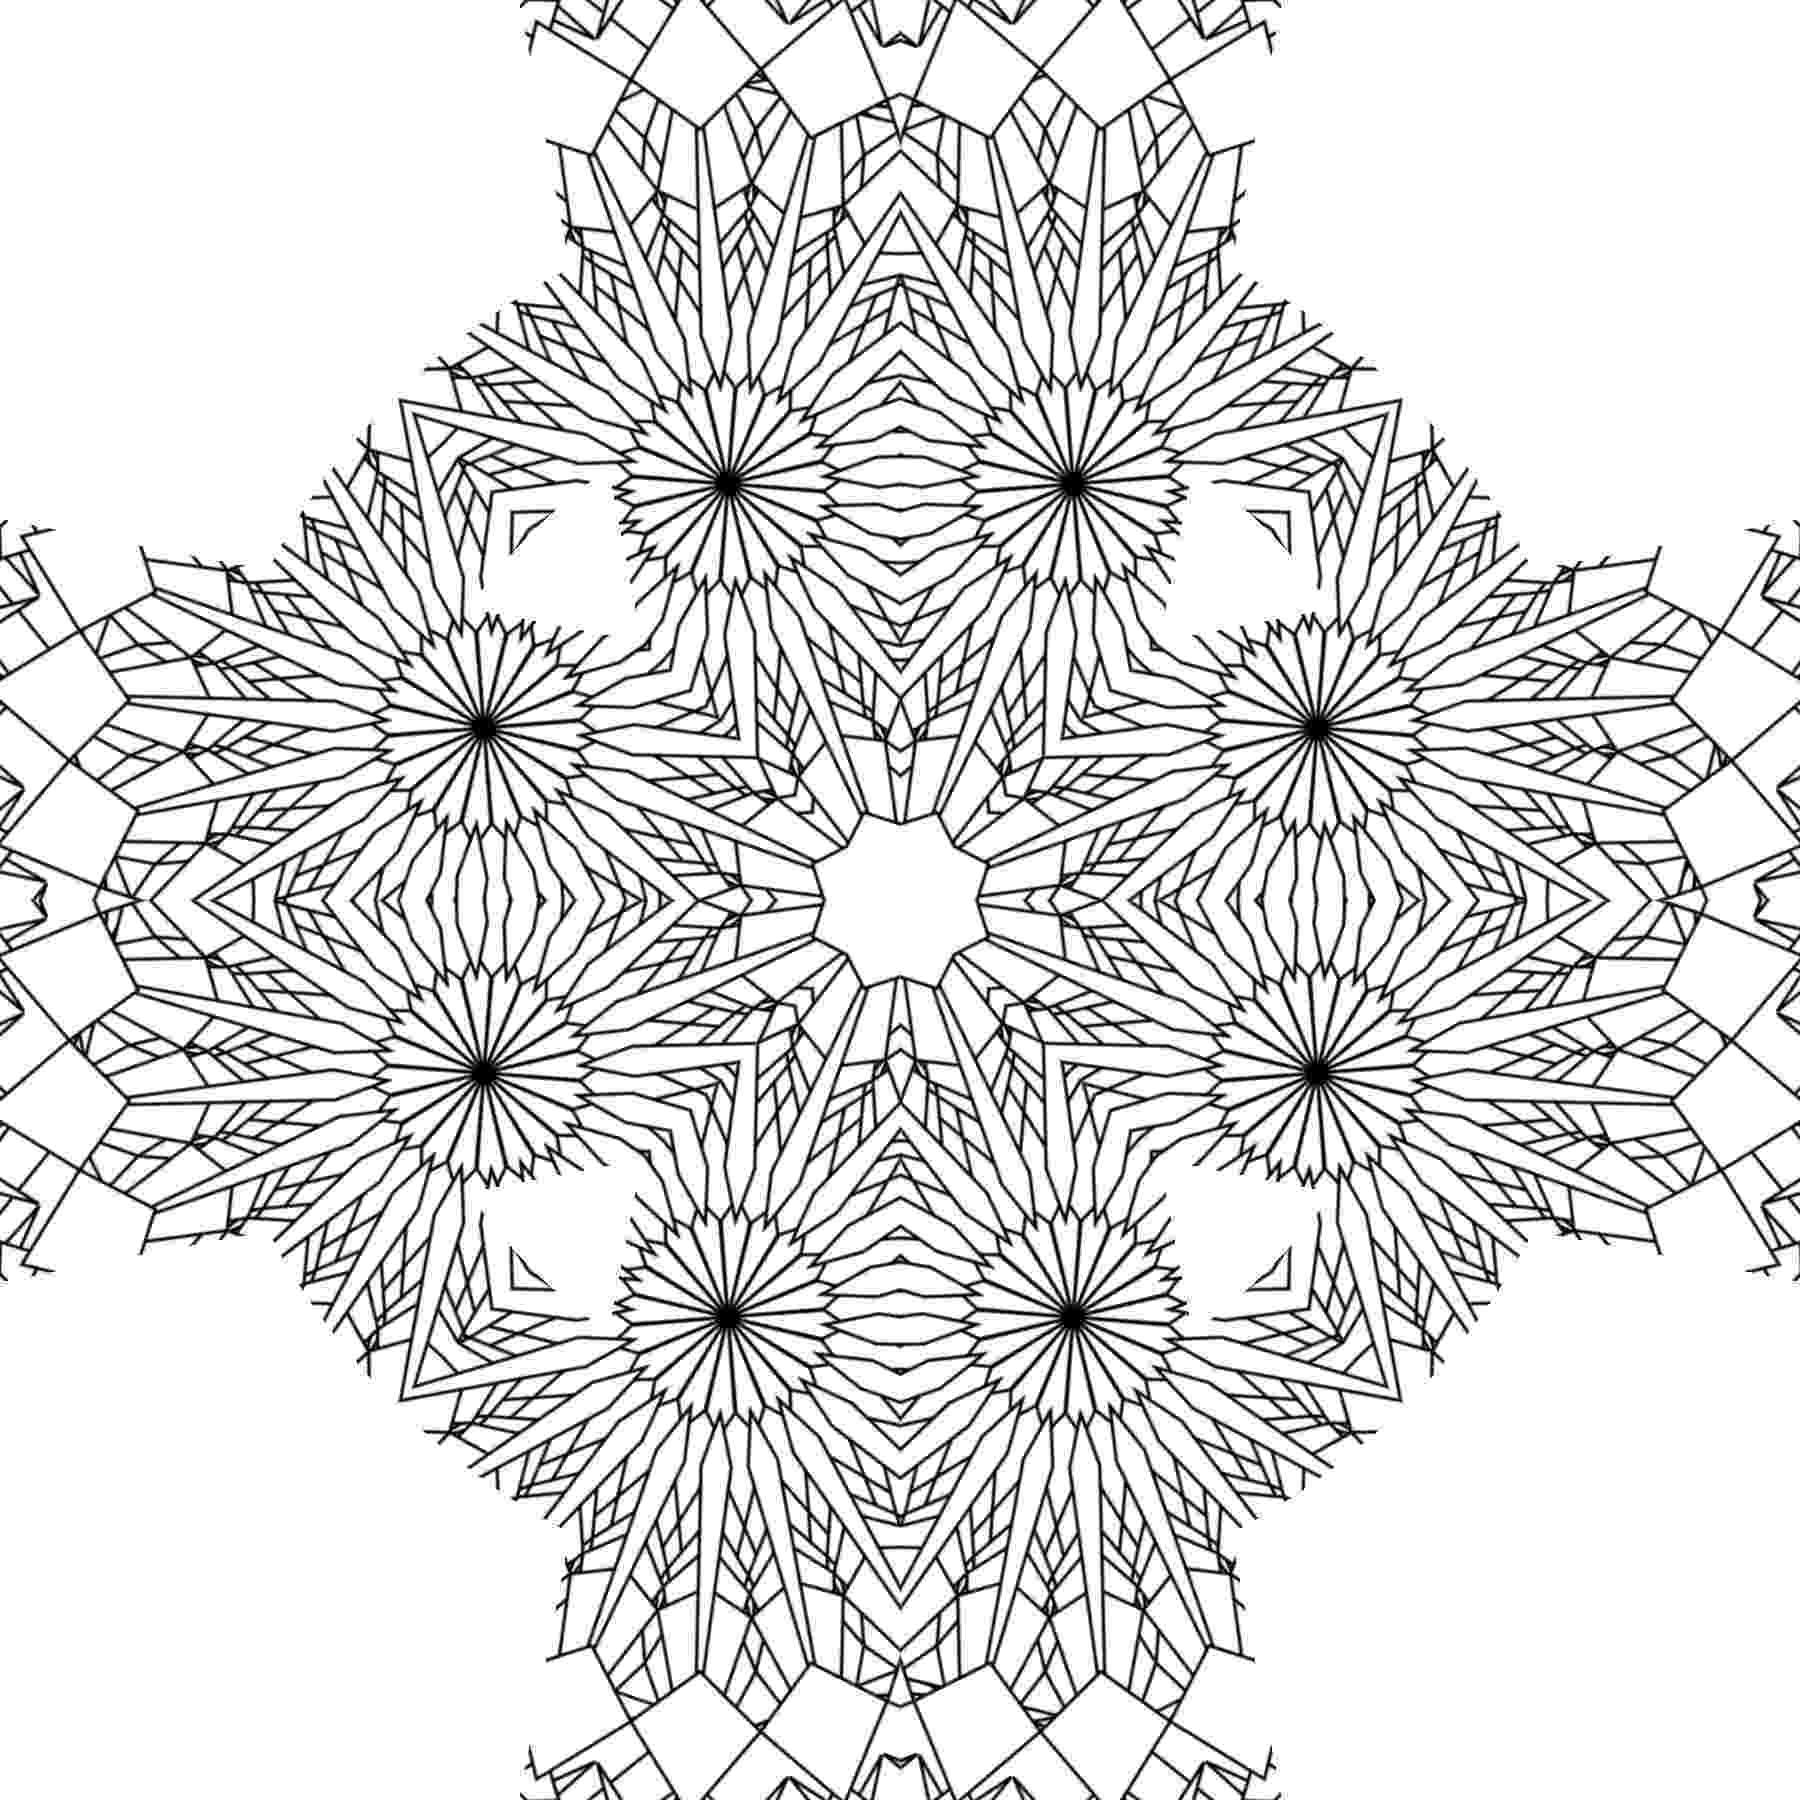 pattern coloring pages for adults floral coloring pages for adults best coloring pages for pattern for adults pages coloring